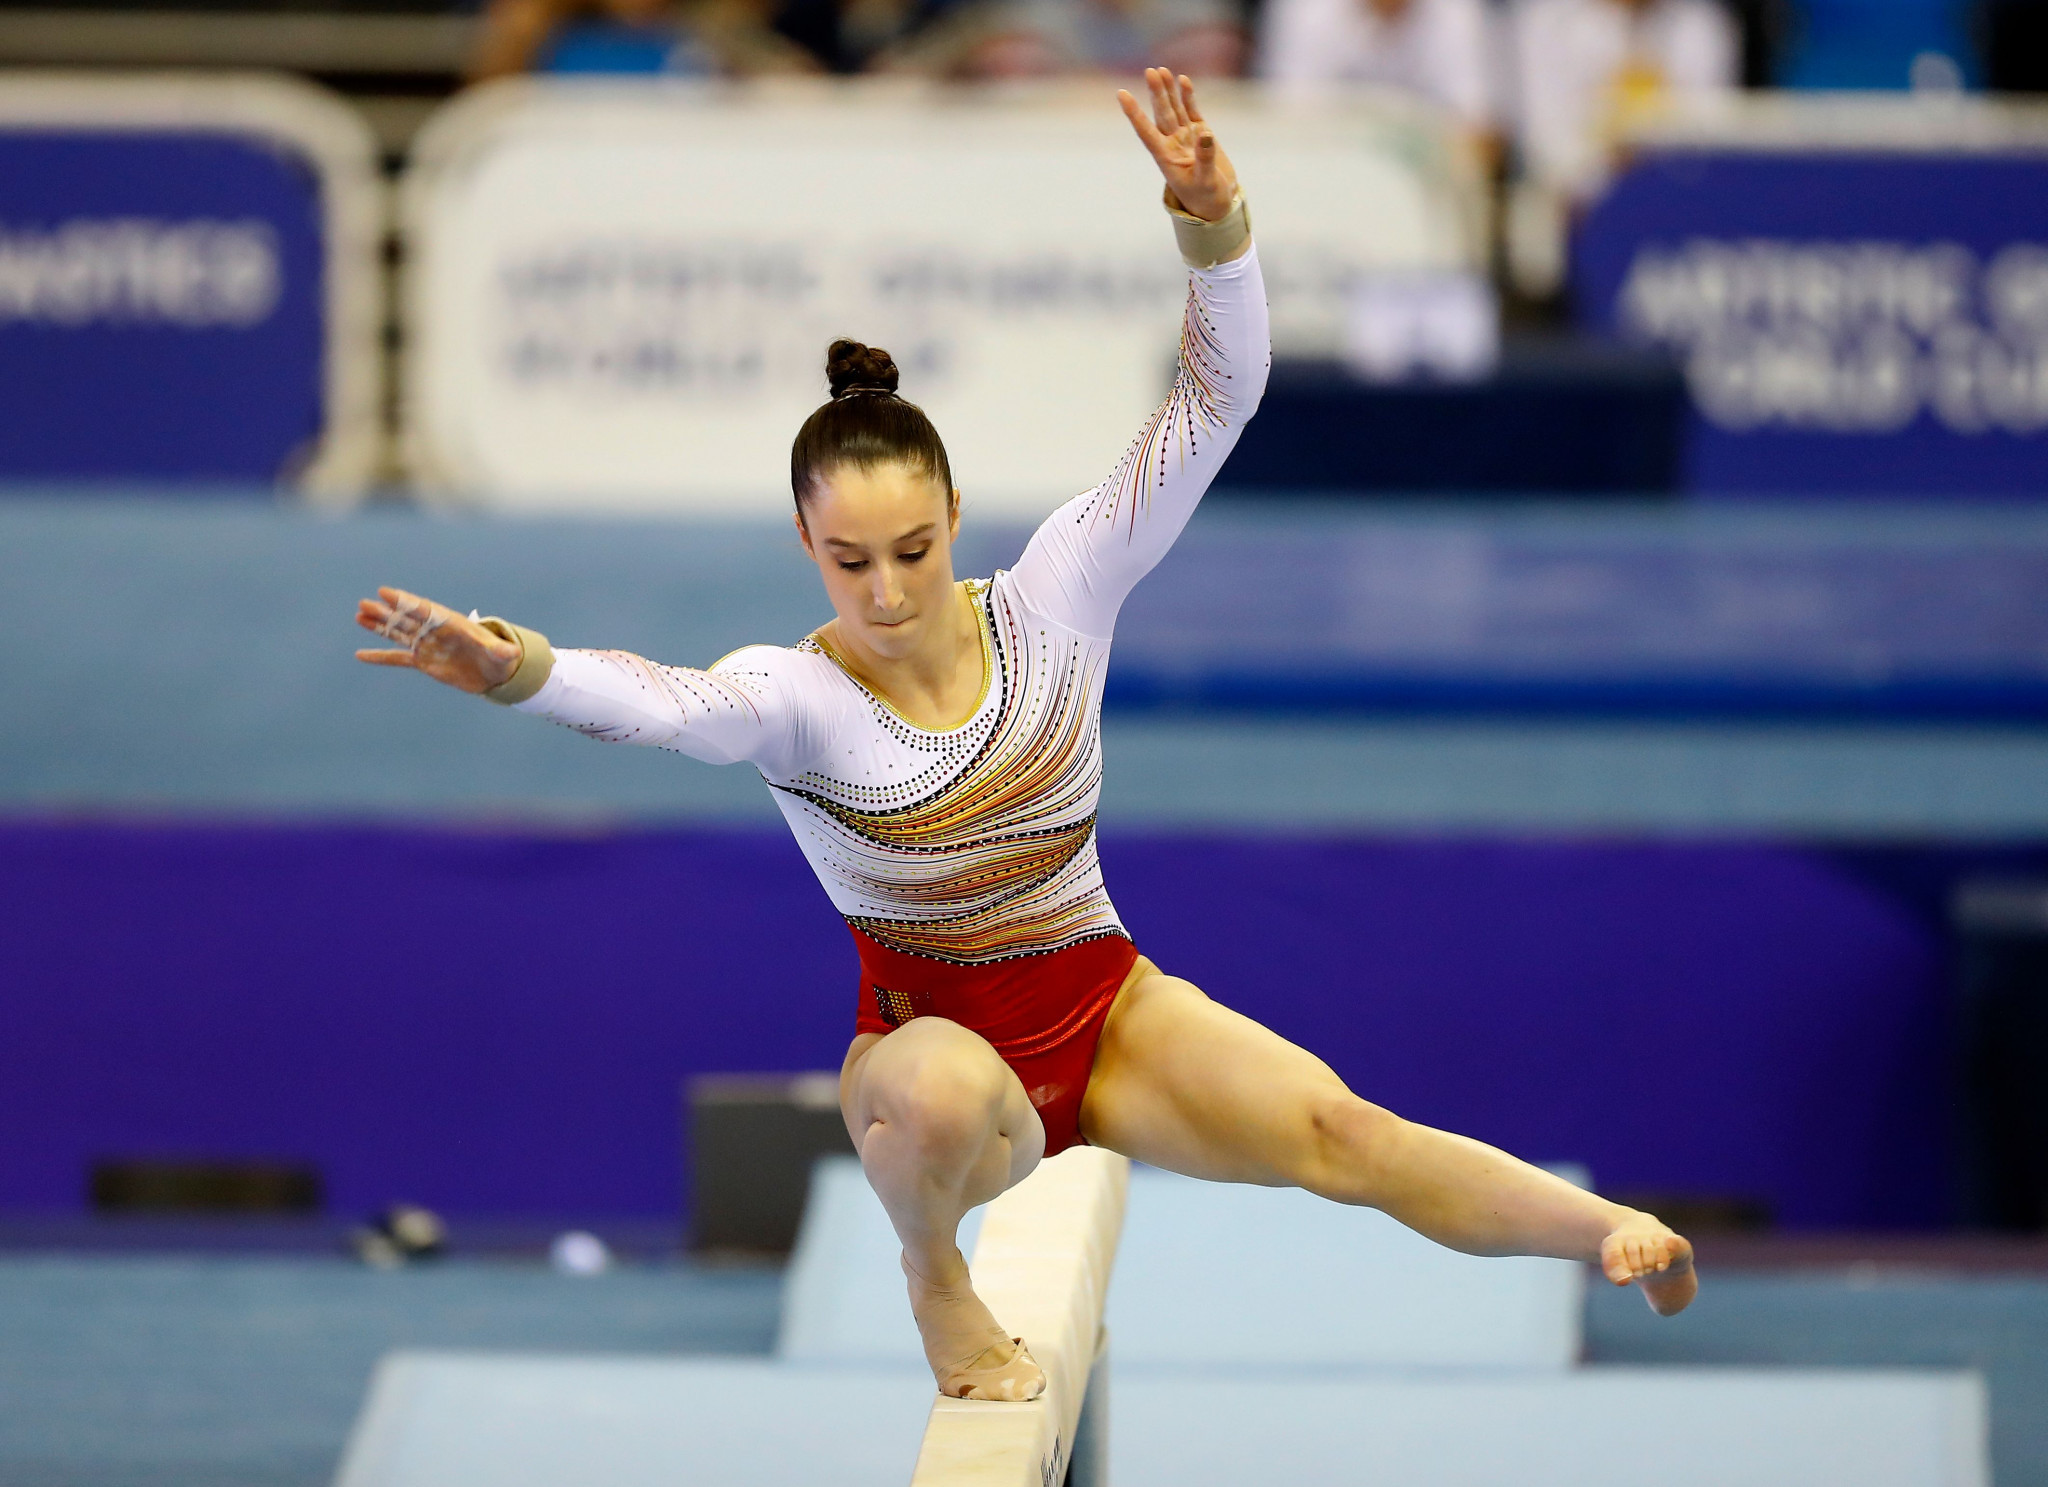 World champion and two-times European artistic gymnastics champion Nina Derwael is competing for Belgium at the Minsk 2019 European Games ©Getty Images